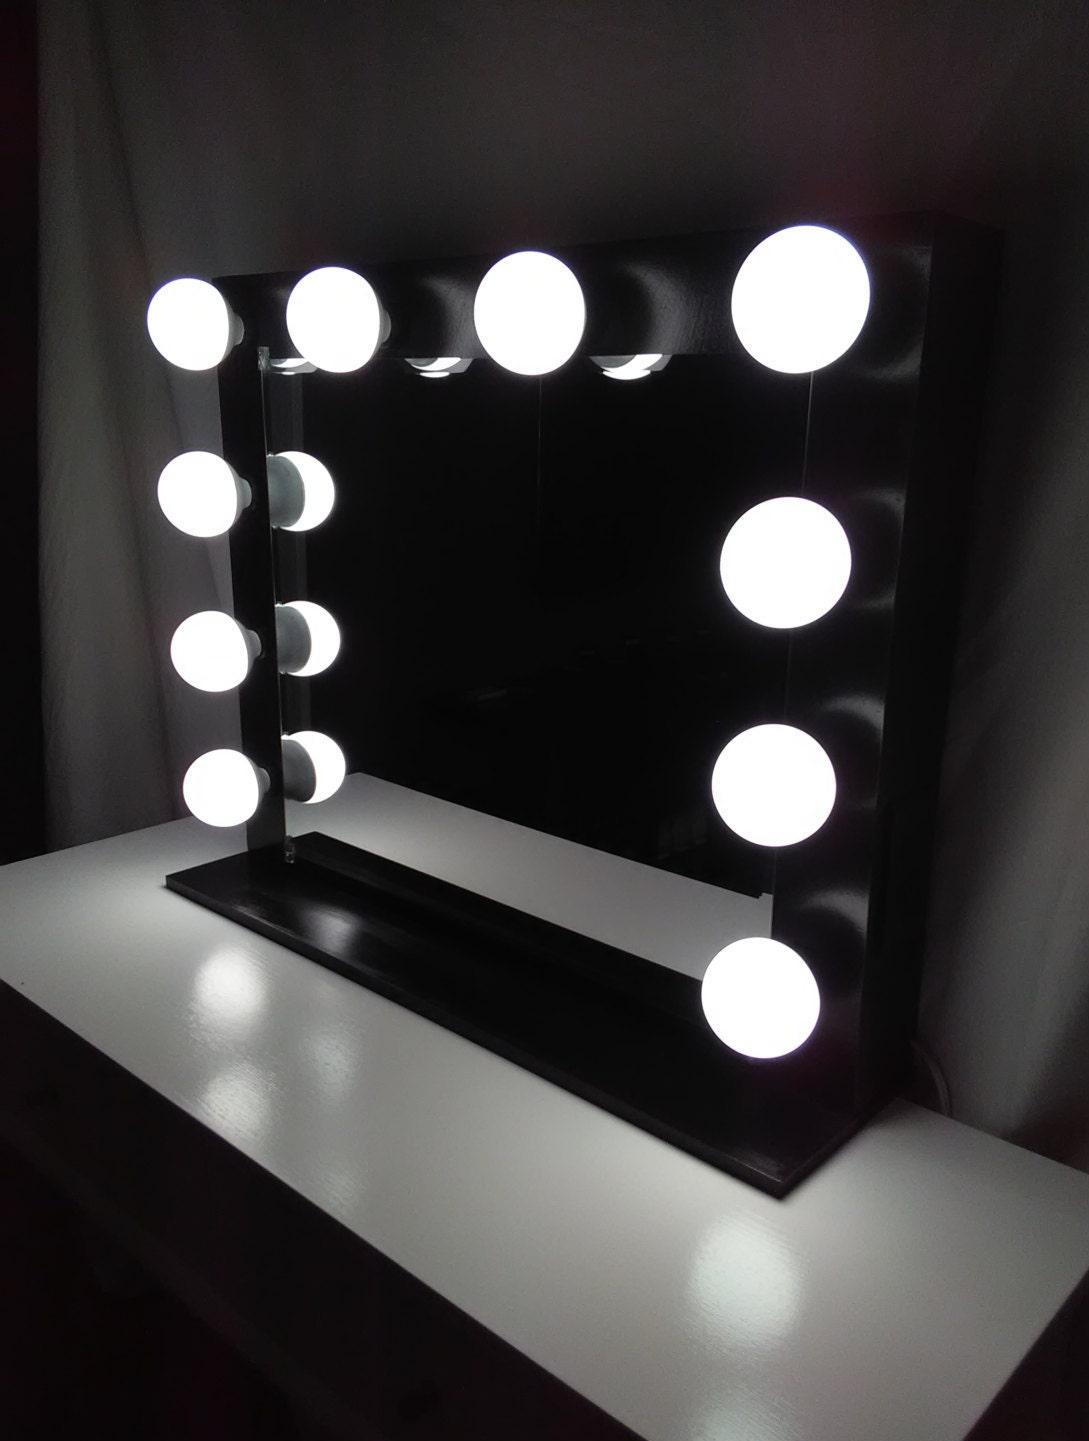 Vanity Lights With Dimmer : Vanity mirror with lights Dimmer and 2plug outlet